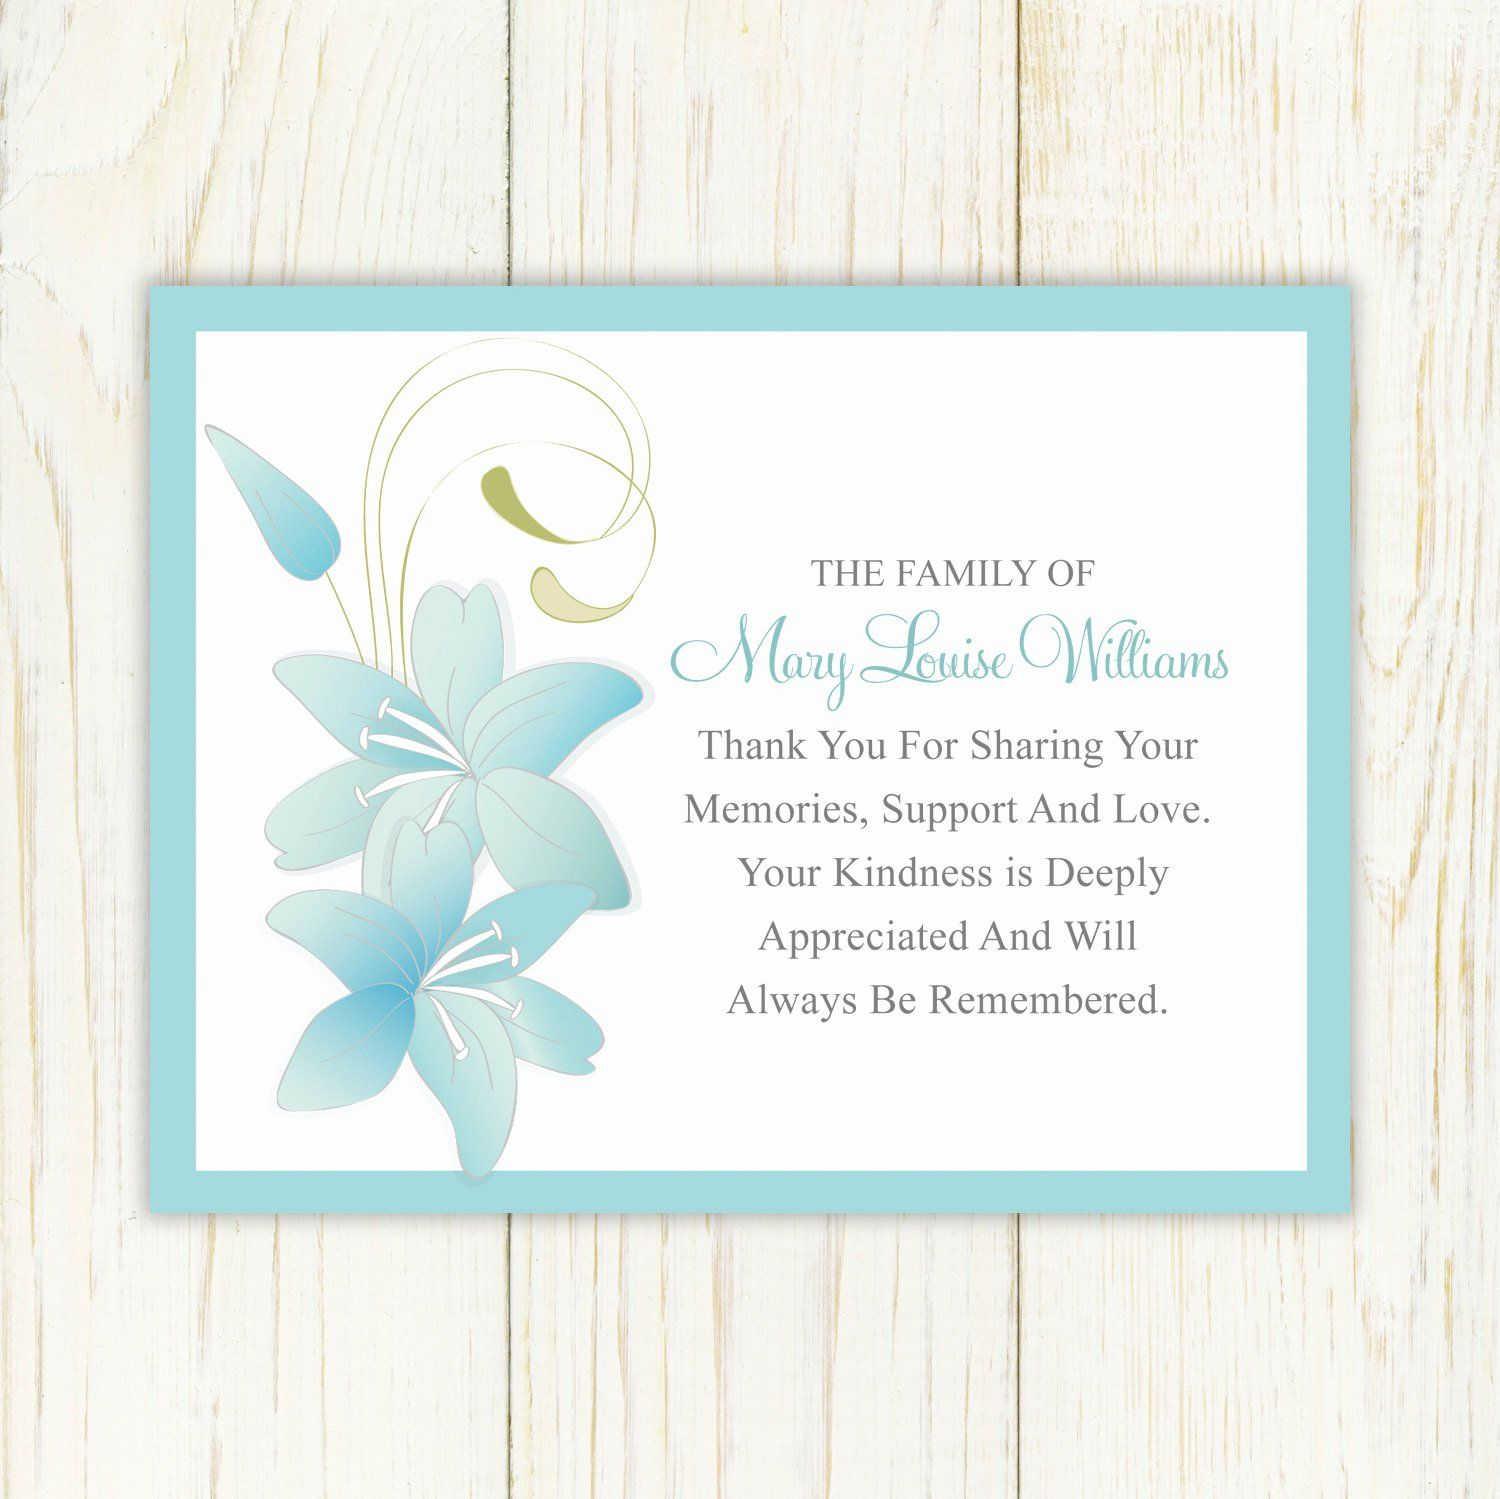 Thank You Card For Money Lovely Sympathy Thank You Card Printable By Eloycedesigns On Funeral Thank You Cards Sympathy Thank You Cards Thank You Card Template